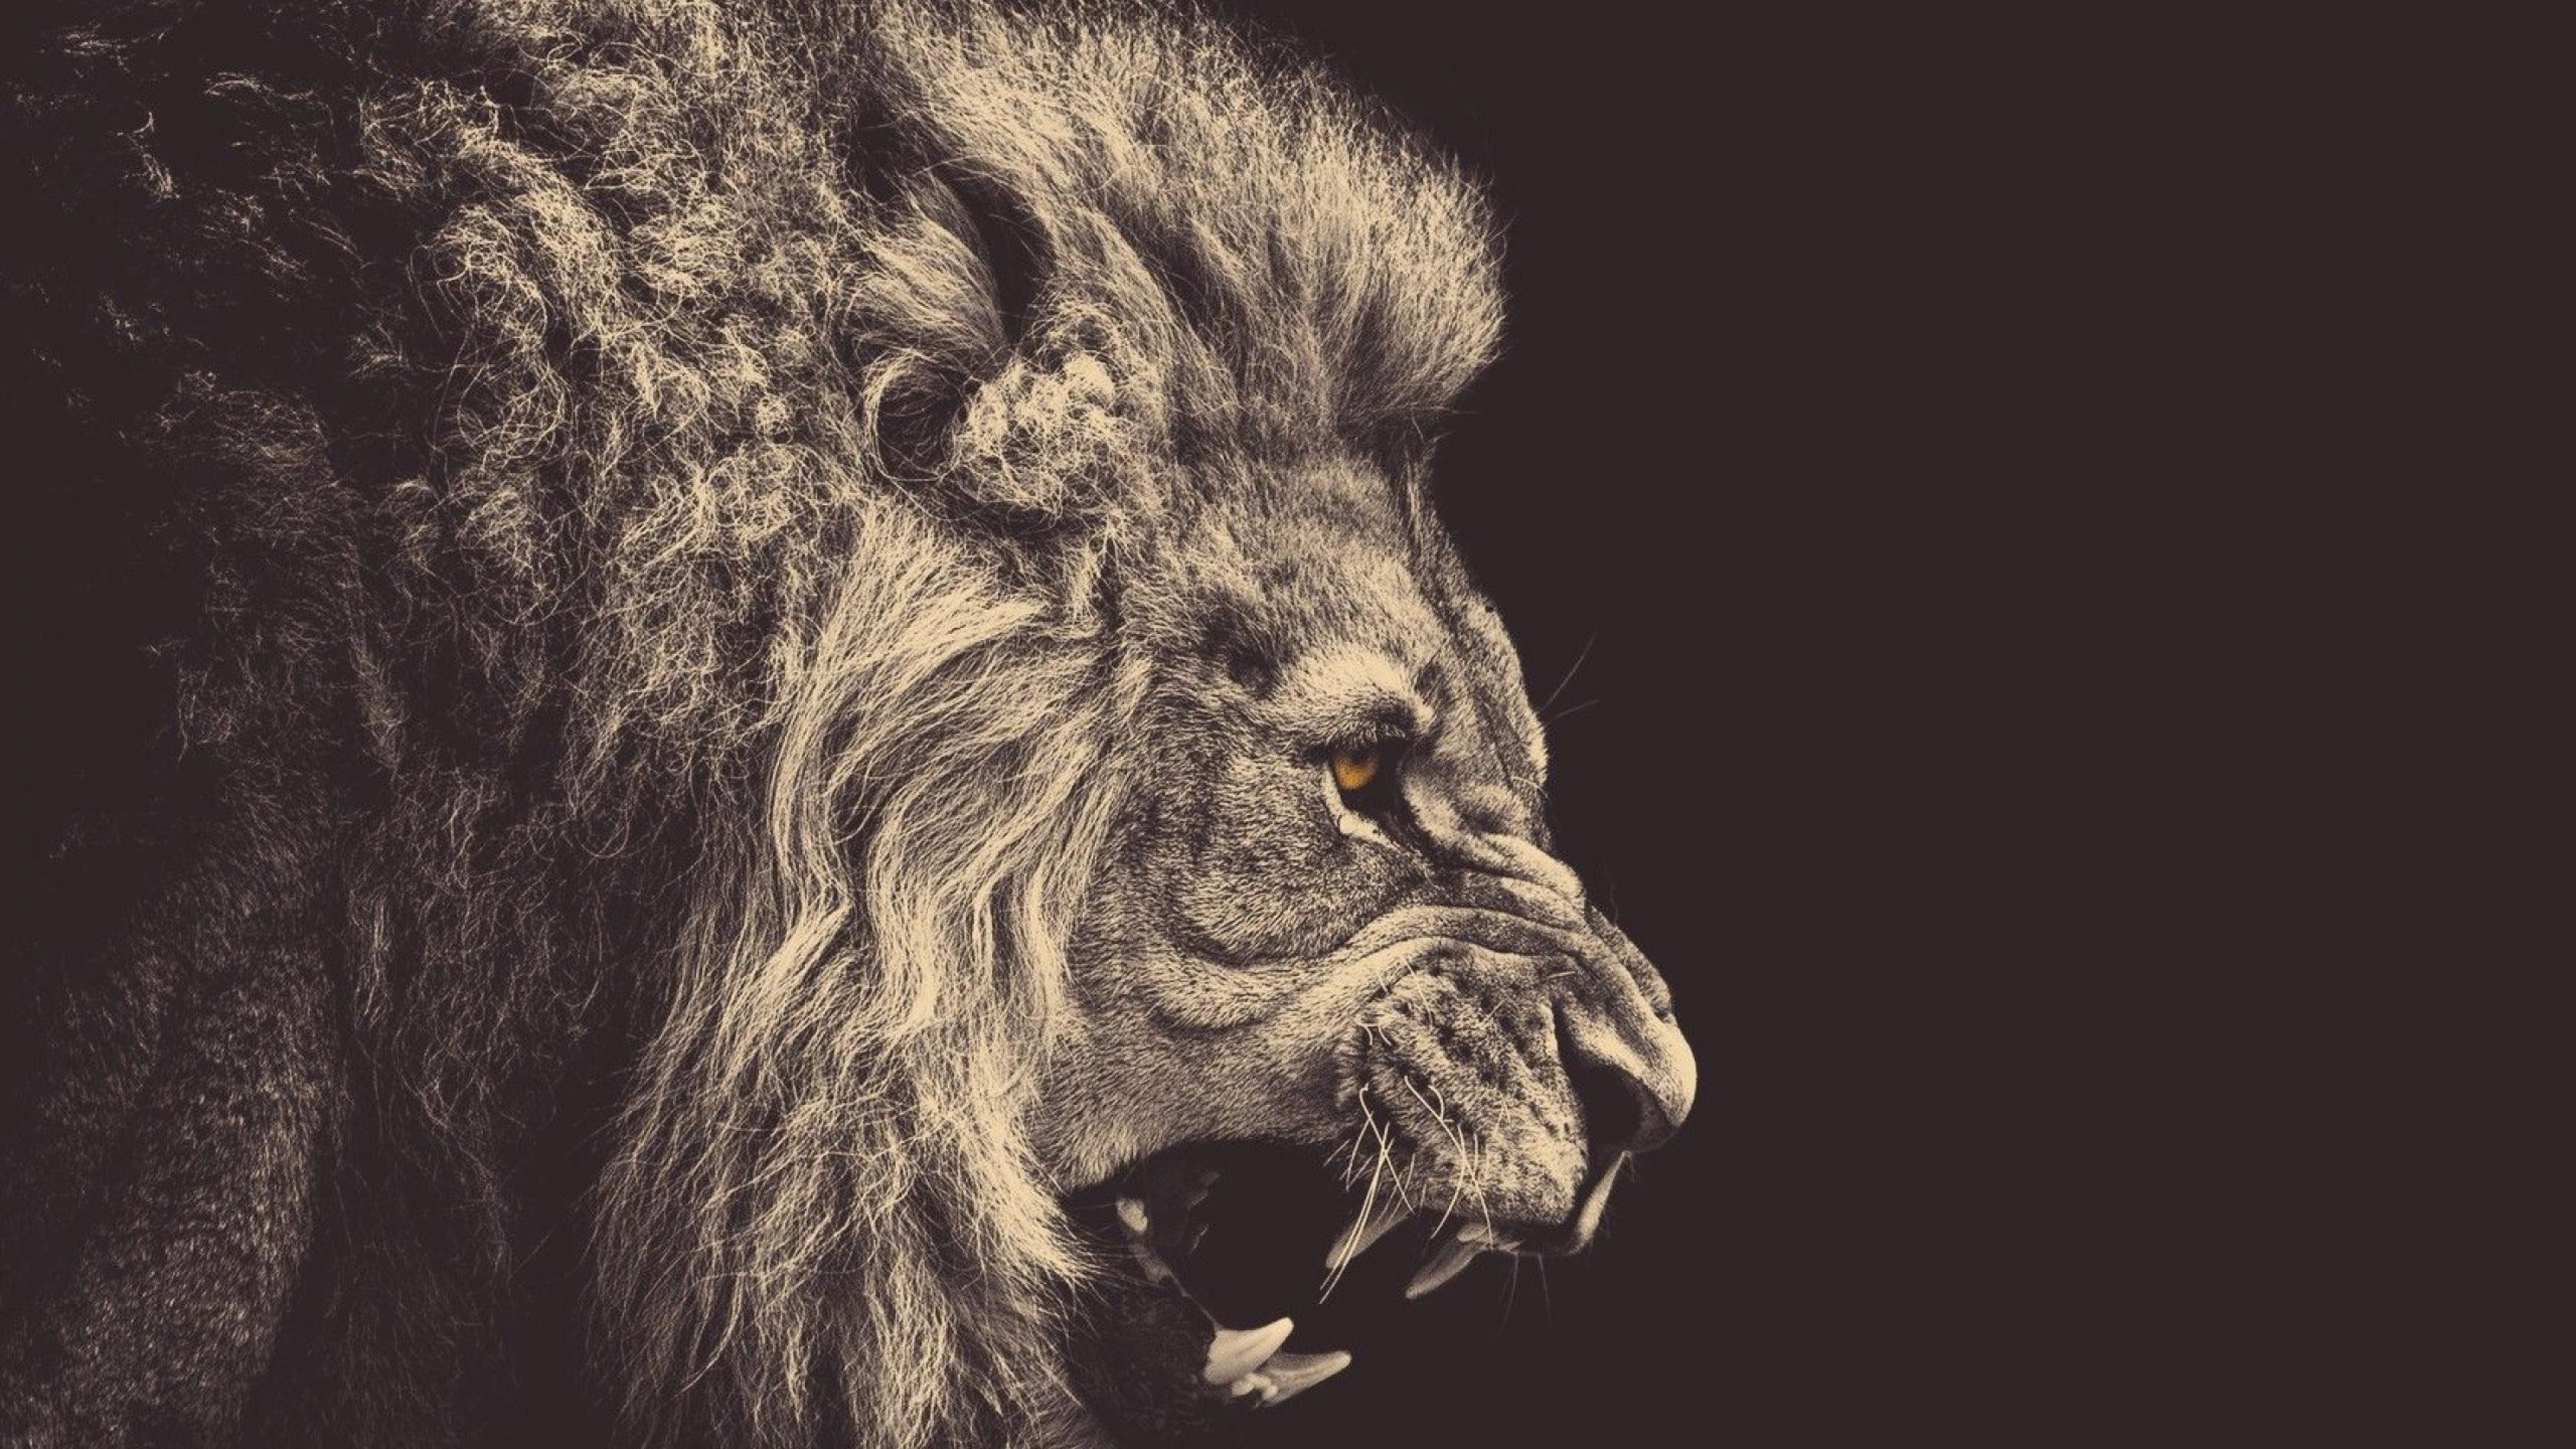 lion wallpaper e98 | hd wallpaper, blue wallpaper, abstract